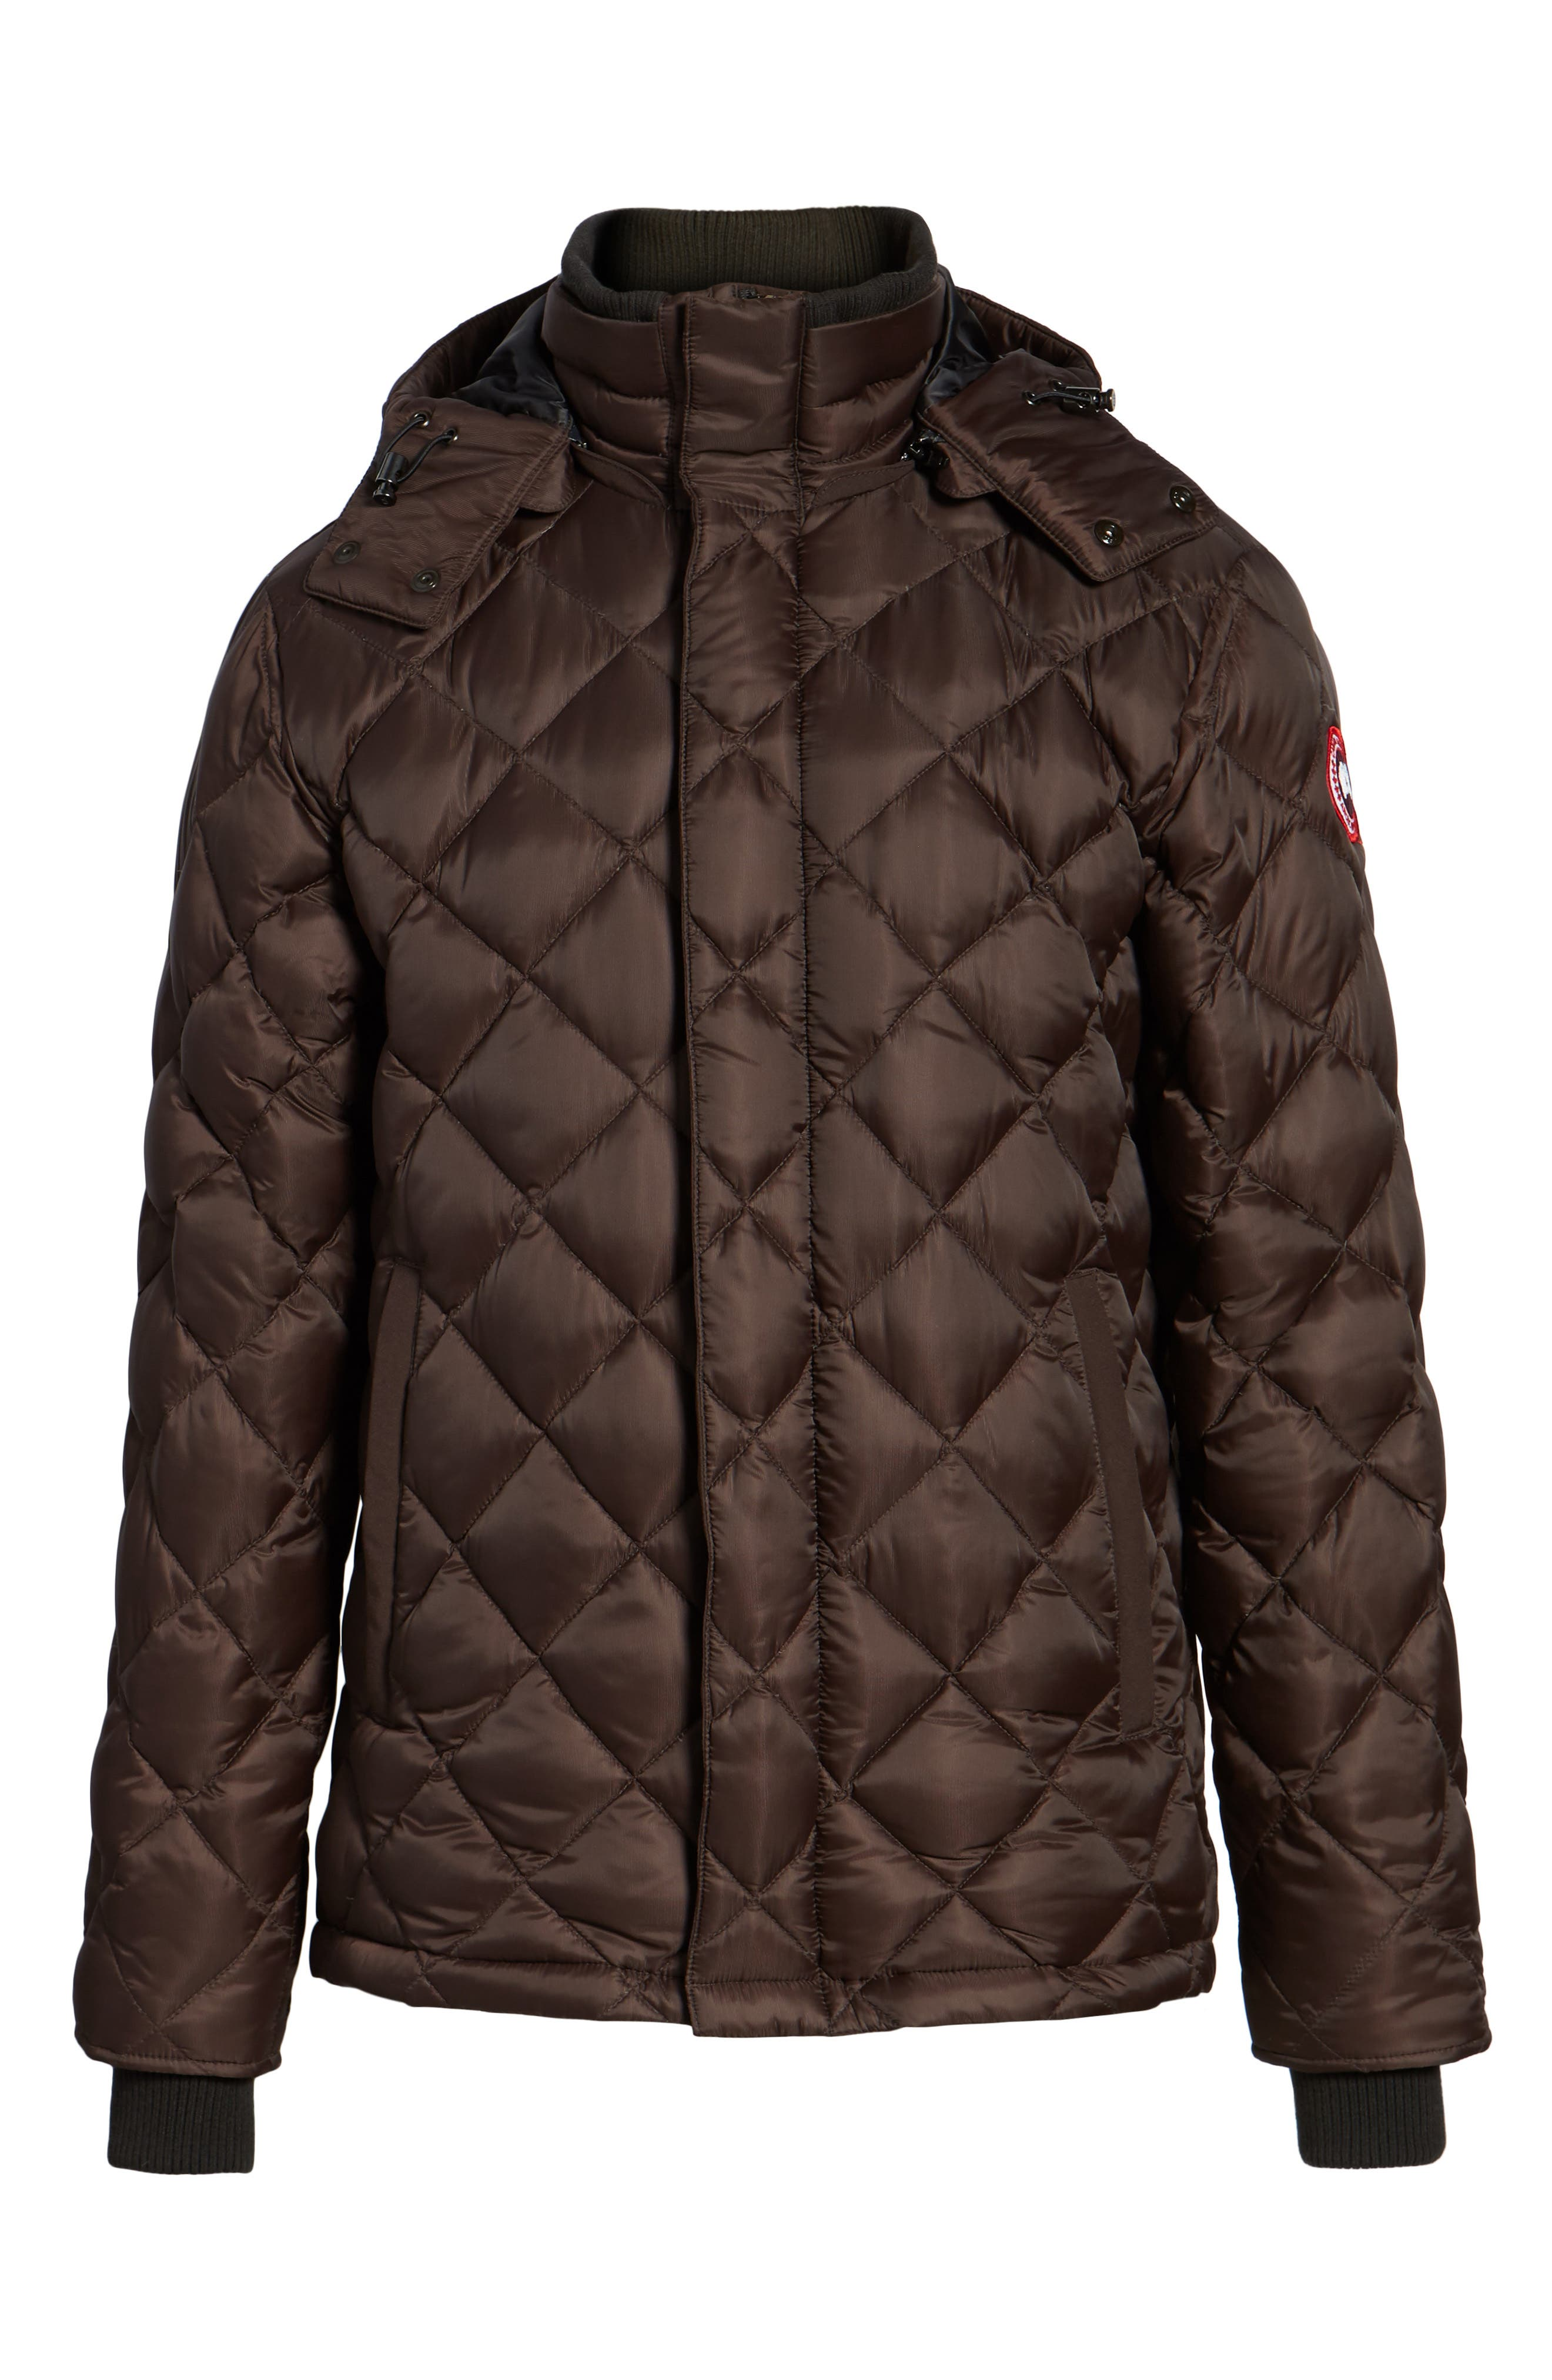 Hendriksen Quilted Down Coat,                             Alternate thumbnail 5, color,                             CHARRED WOOD